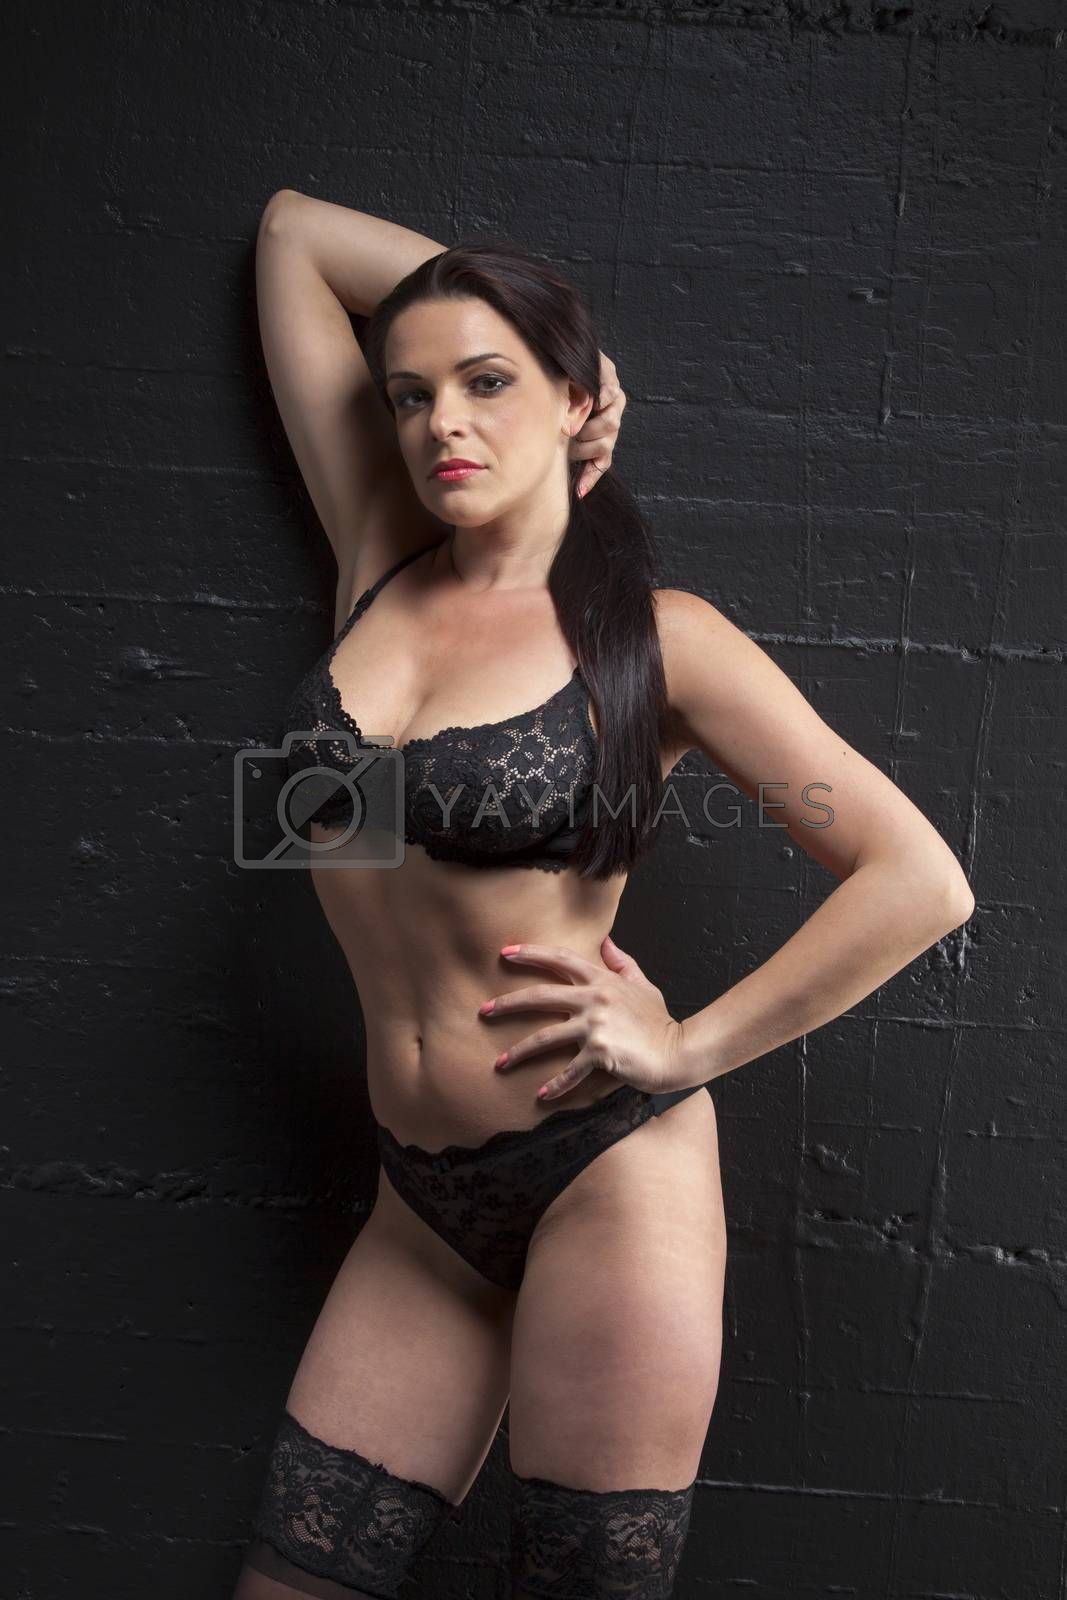 Royalty free image of woman in underwear on a wall by bernjuer